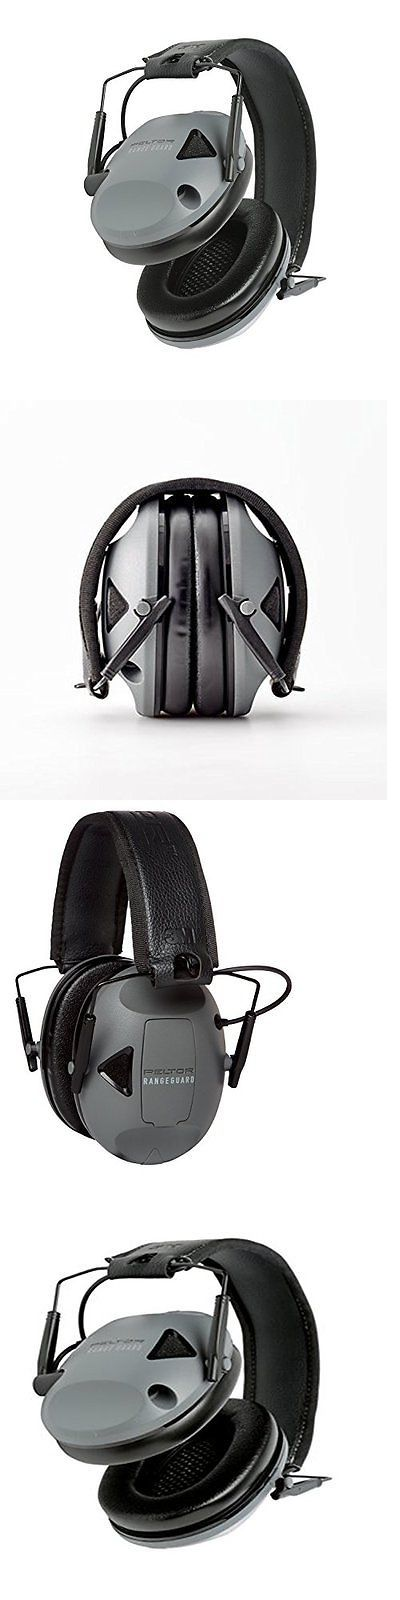 Hearing Protection 73942: Peltor Foldable Electronic Earmuffs Hearing Protectors For Shooting And Hunting -> BUY IT NOW ONLY: $60.0 on eBay!